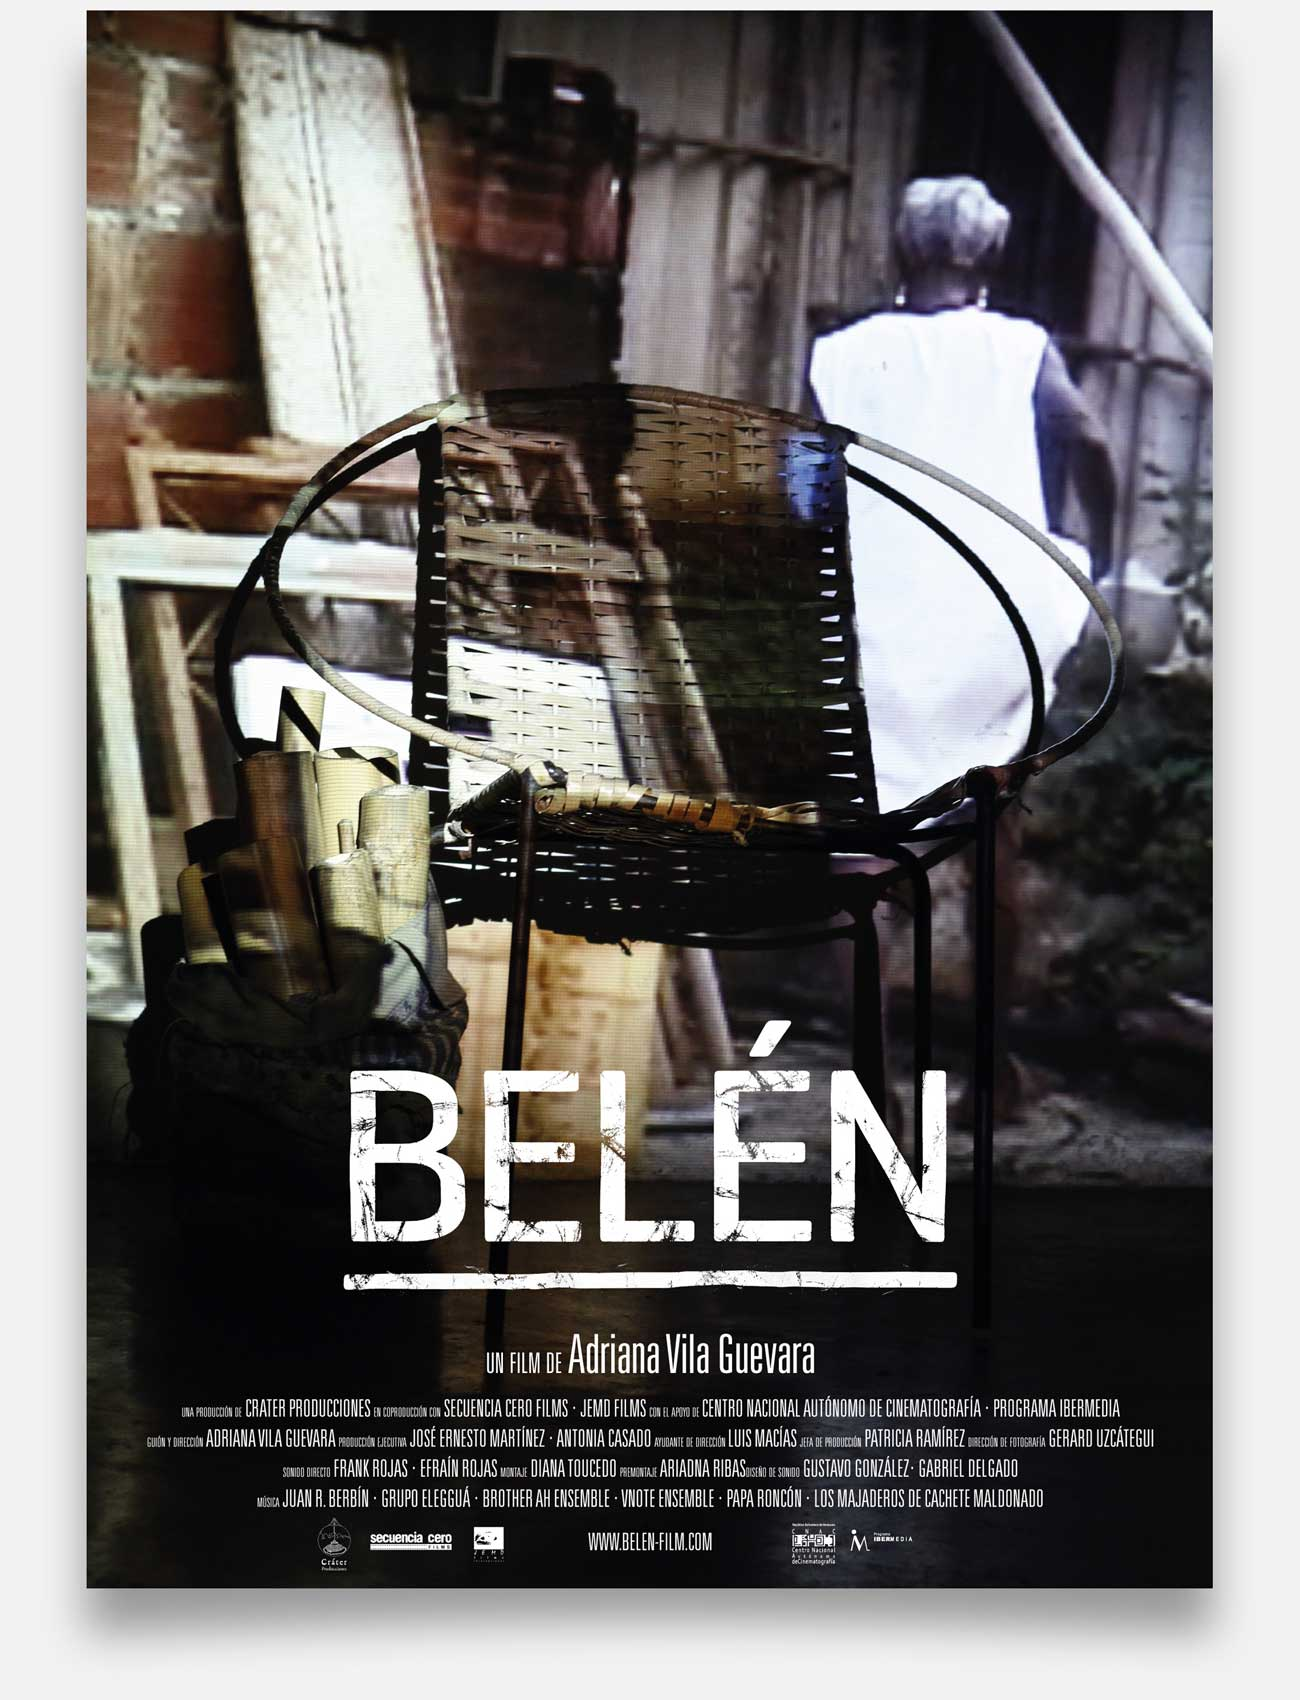 Silvia Miguez-Poster-Movie-Belen